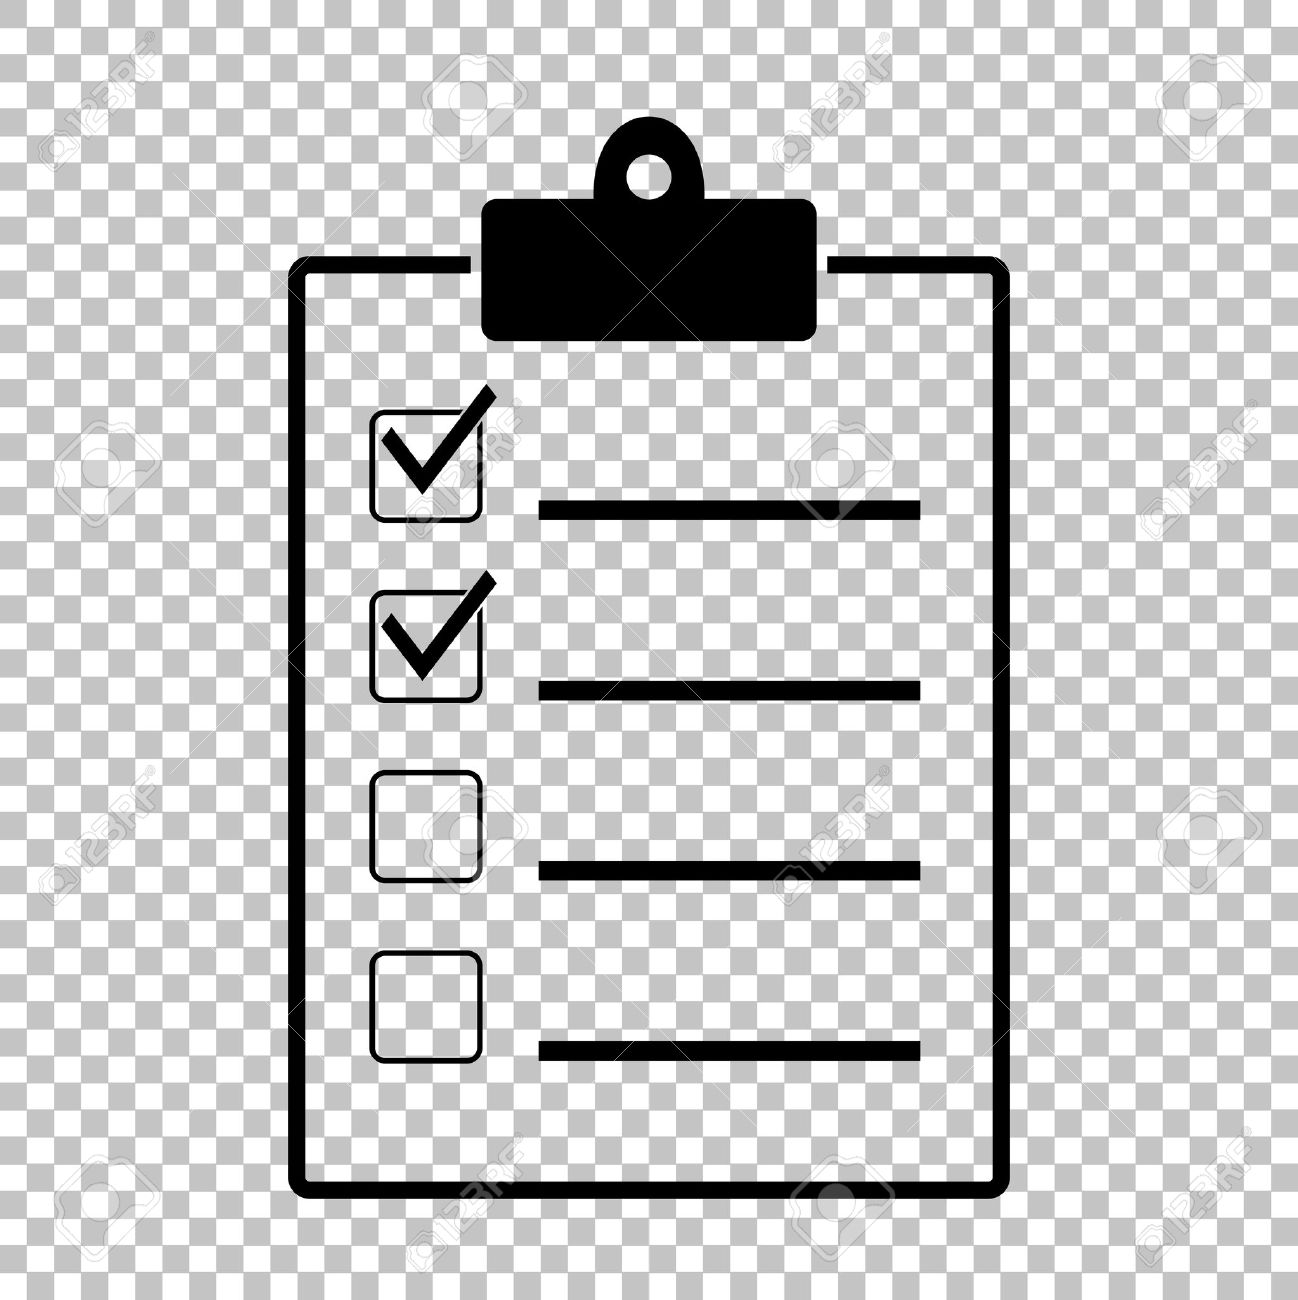 checklist sign. flat style icon on transparent background royalty